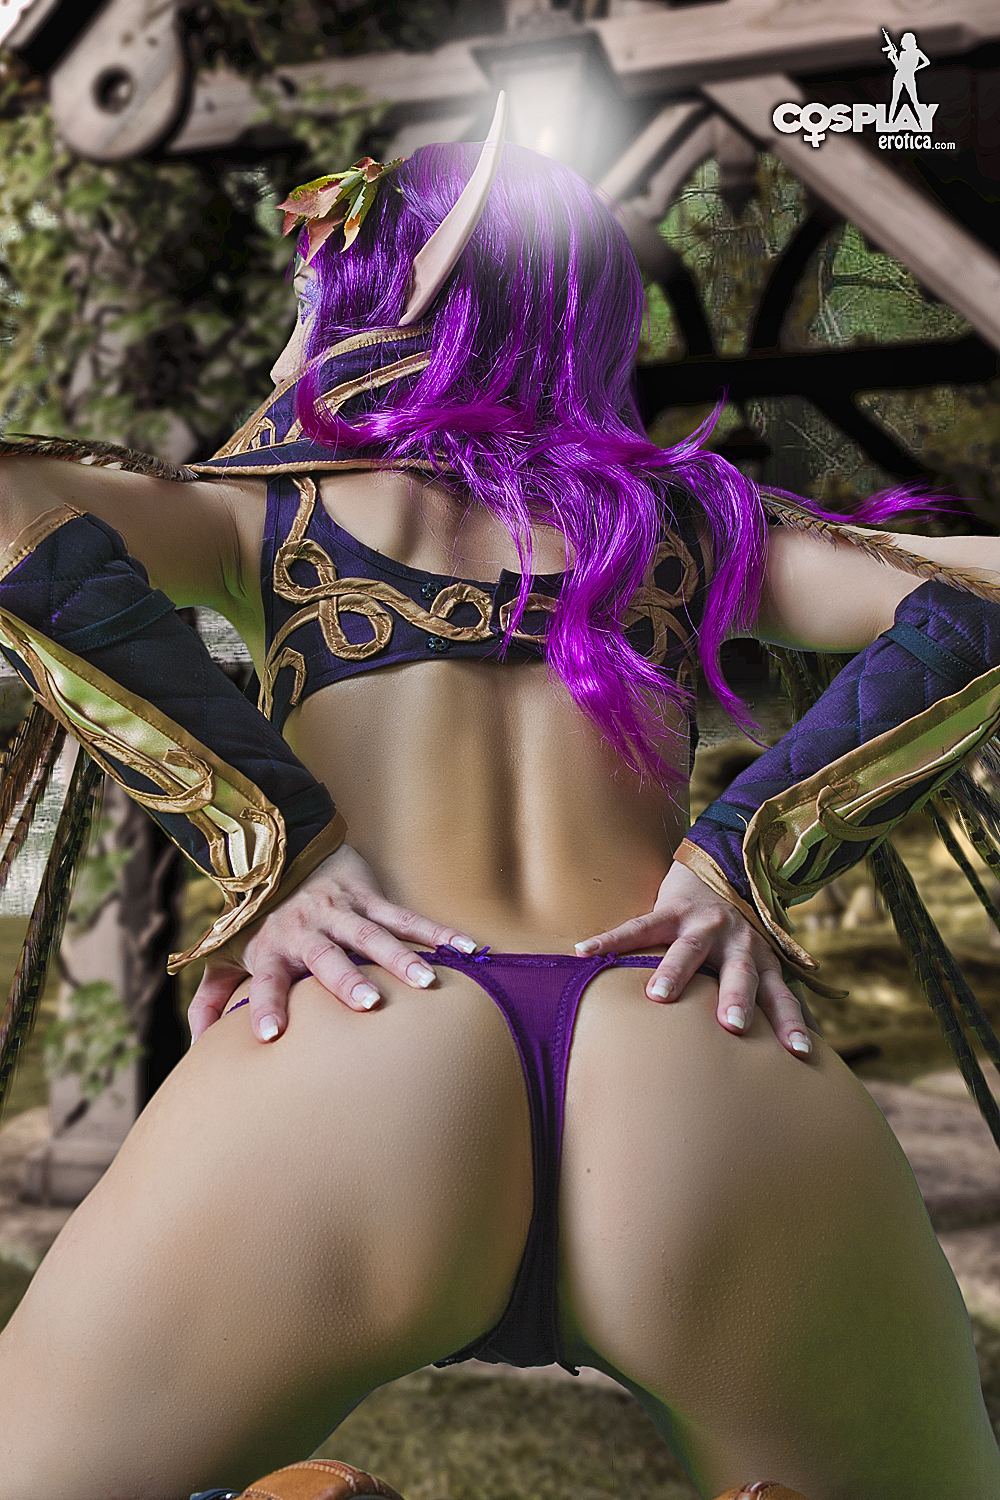 Cosplay erotica warcraft porn tube